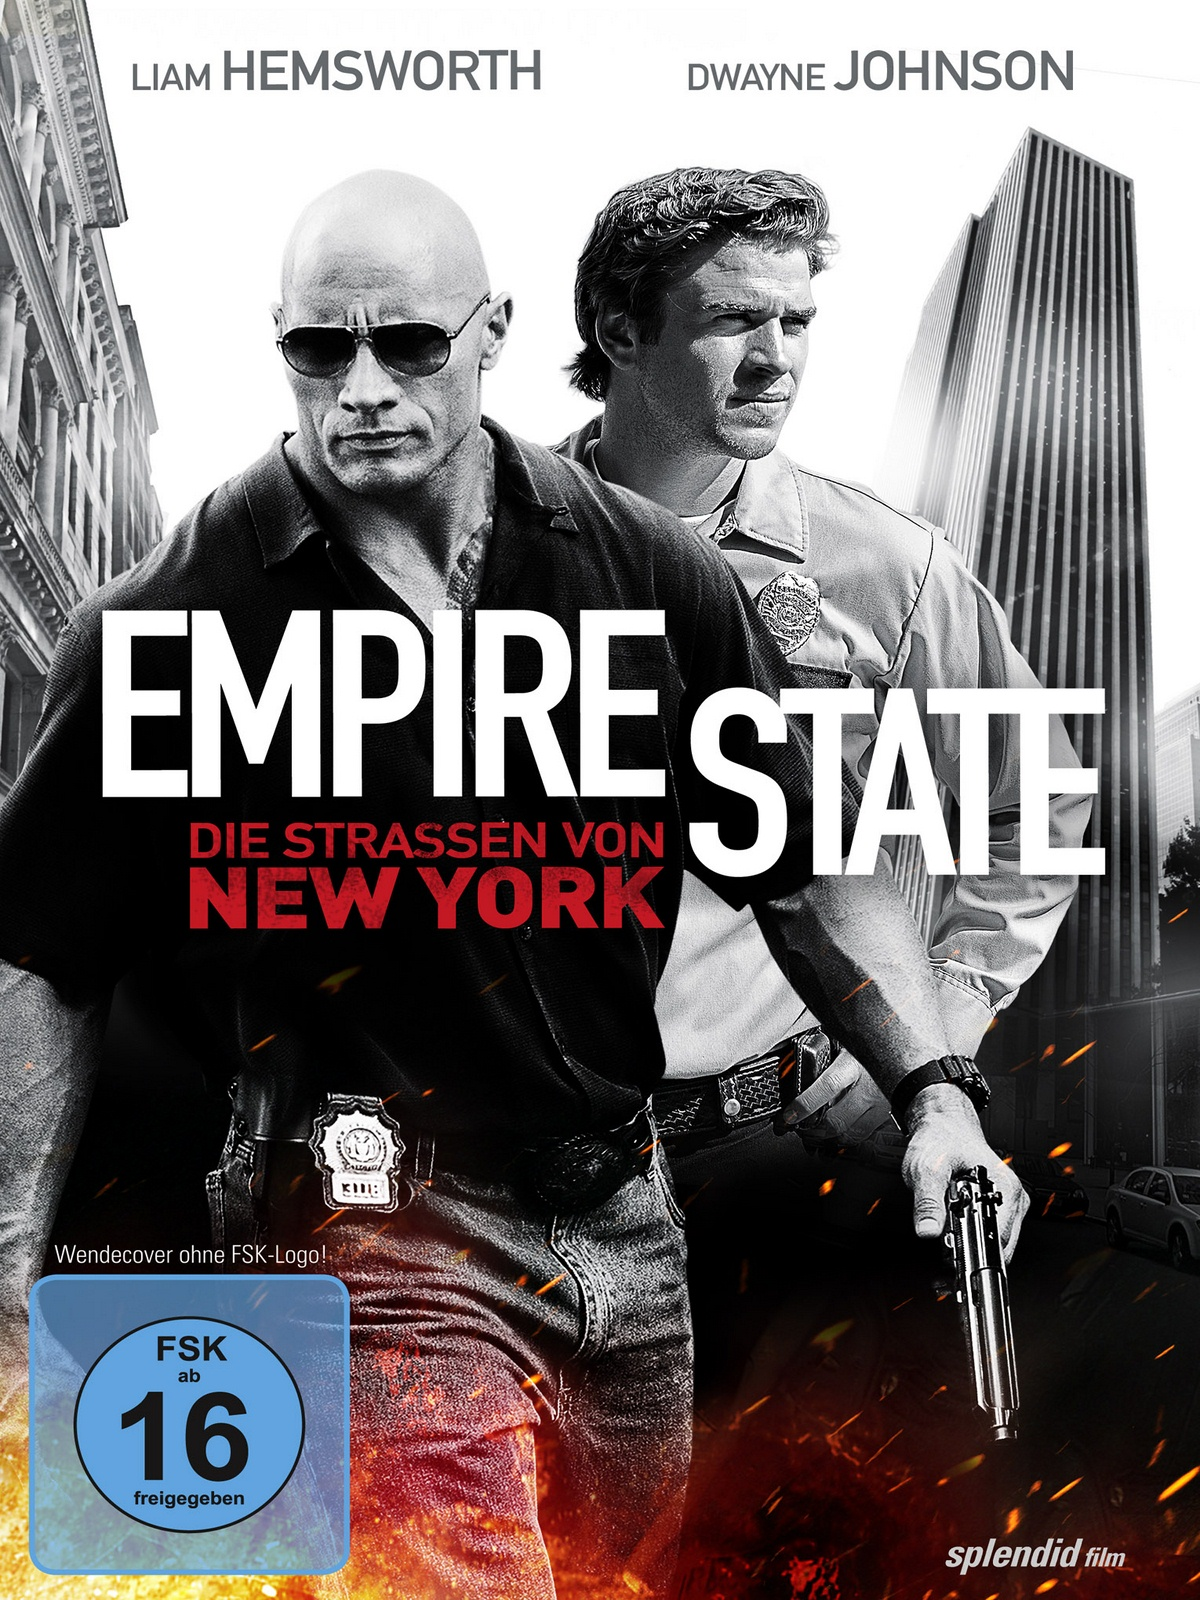 Empire State - Die Strassen von New York - Film 2013 ...